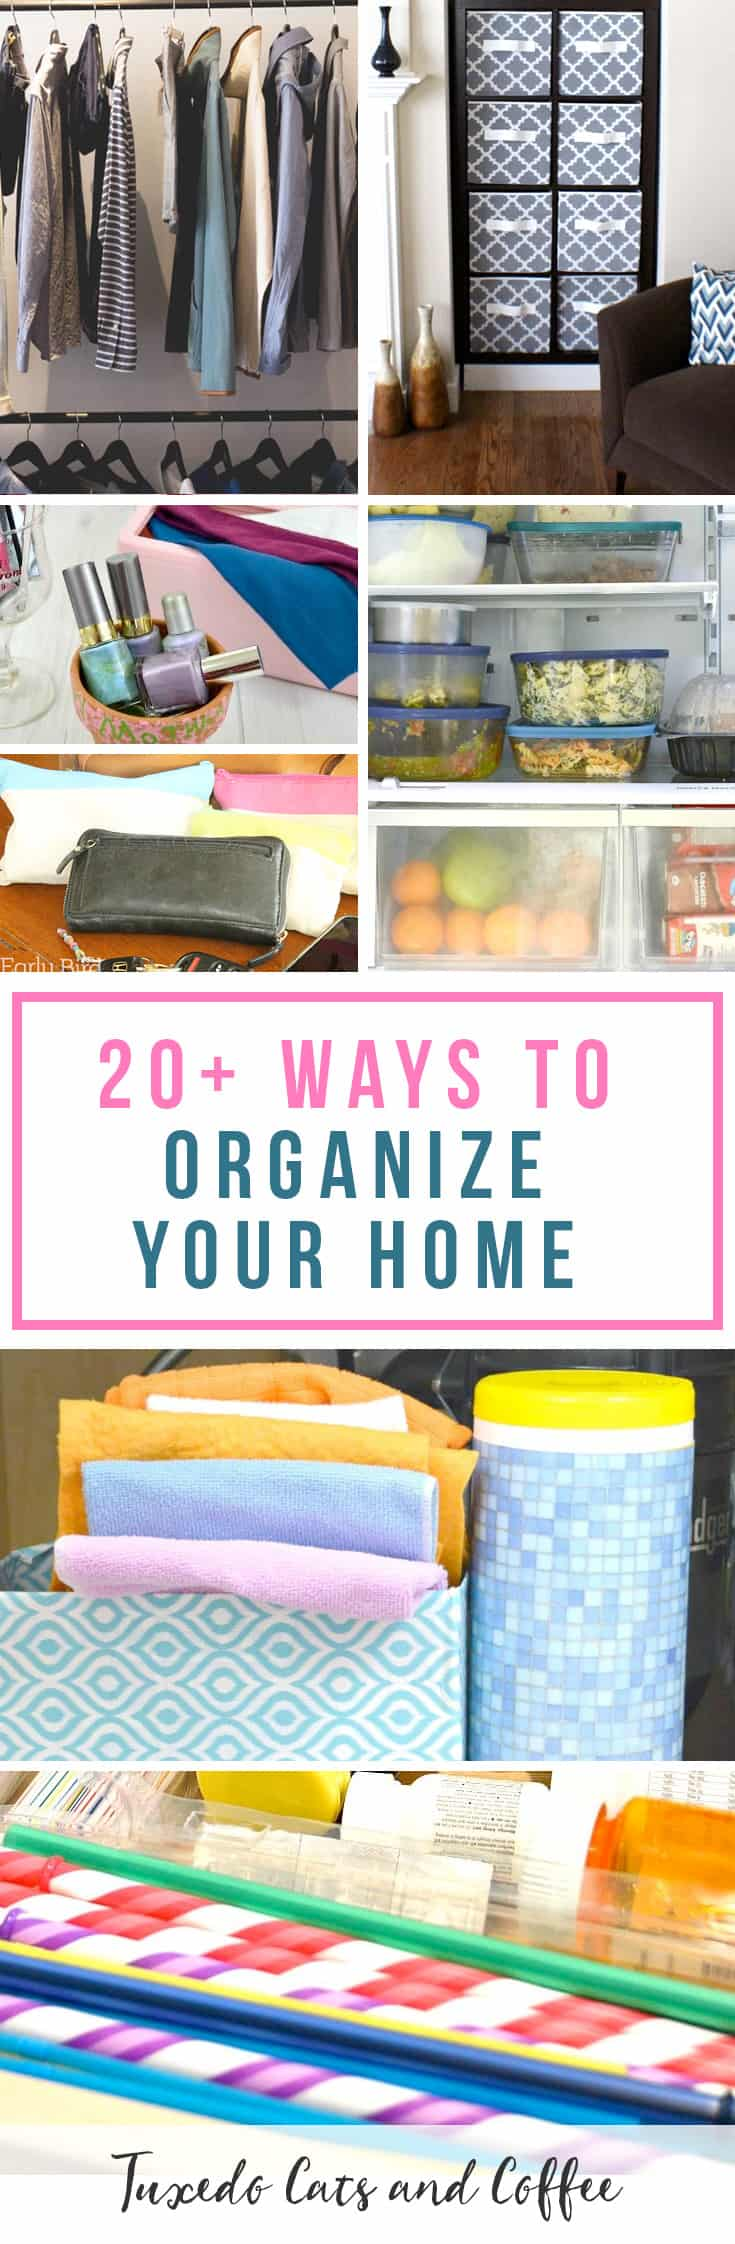 with spring upon us itu0027s a great time to get organized and go through your - How To Organize Your Home